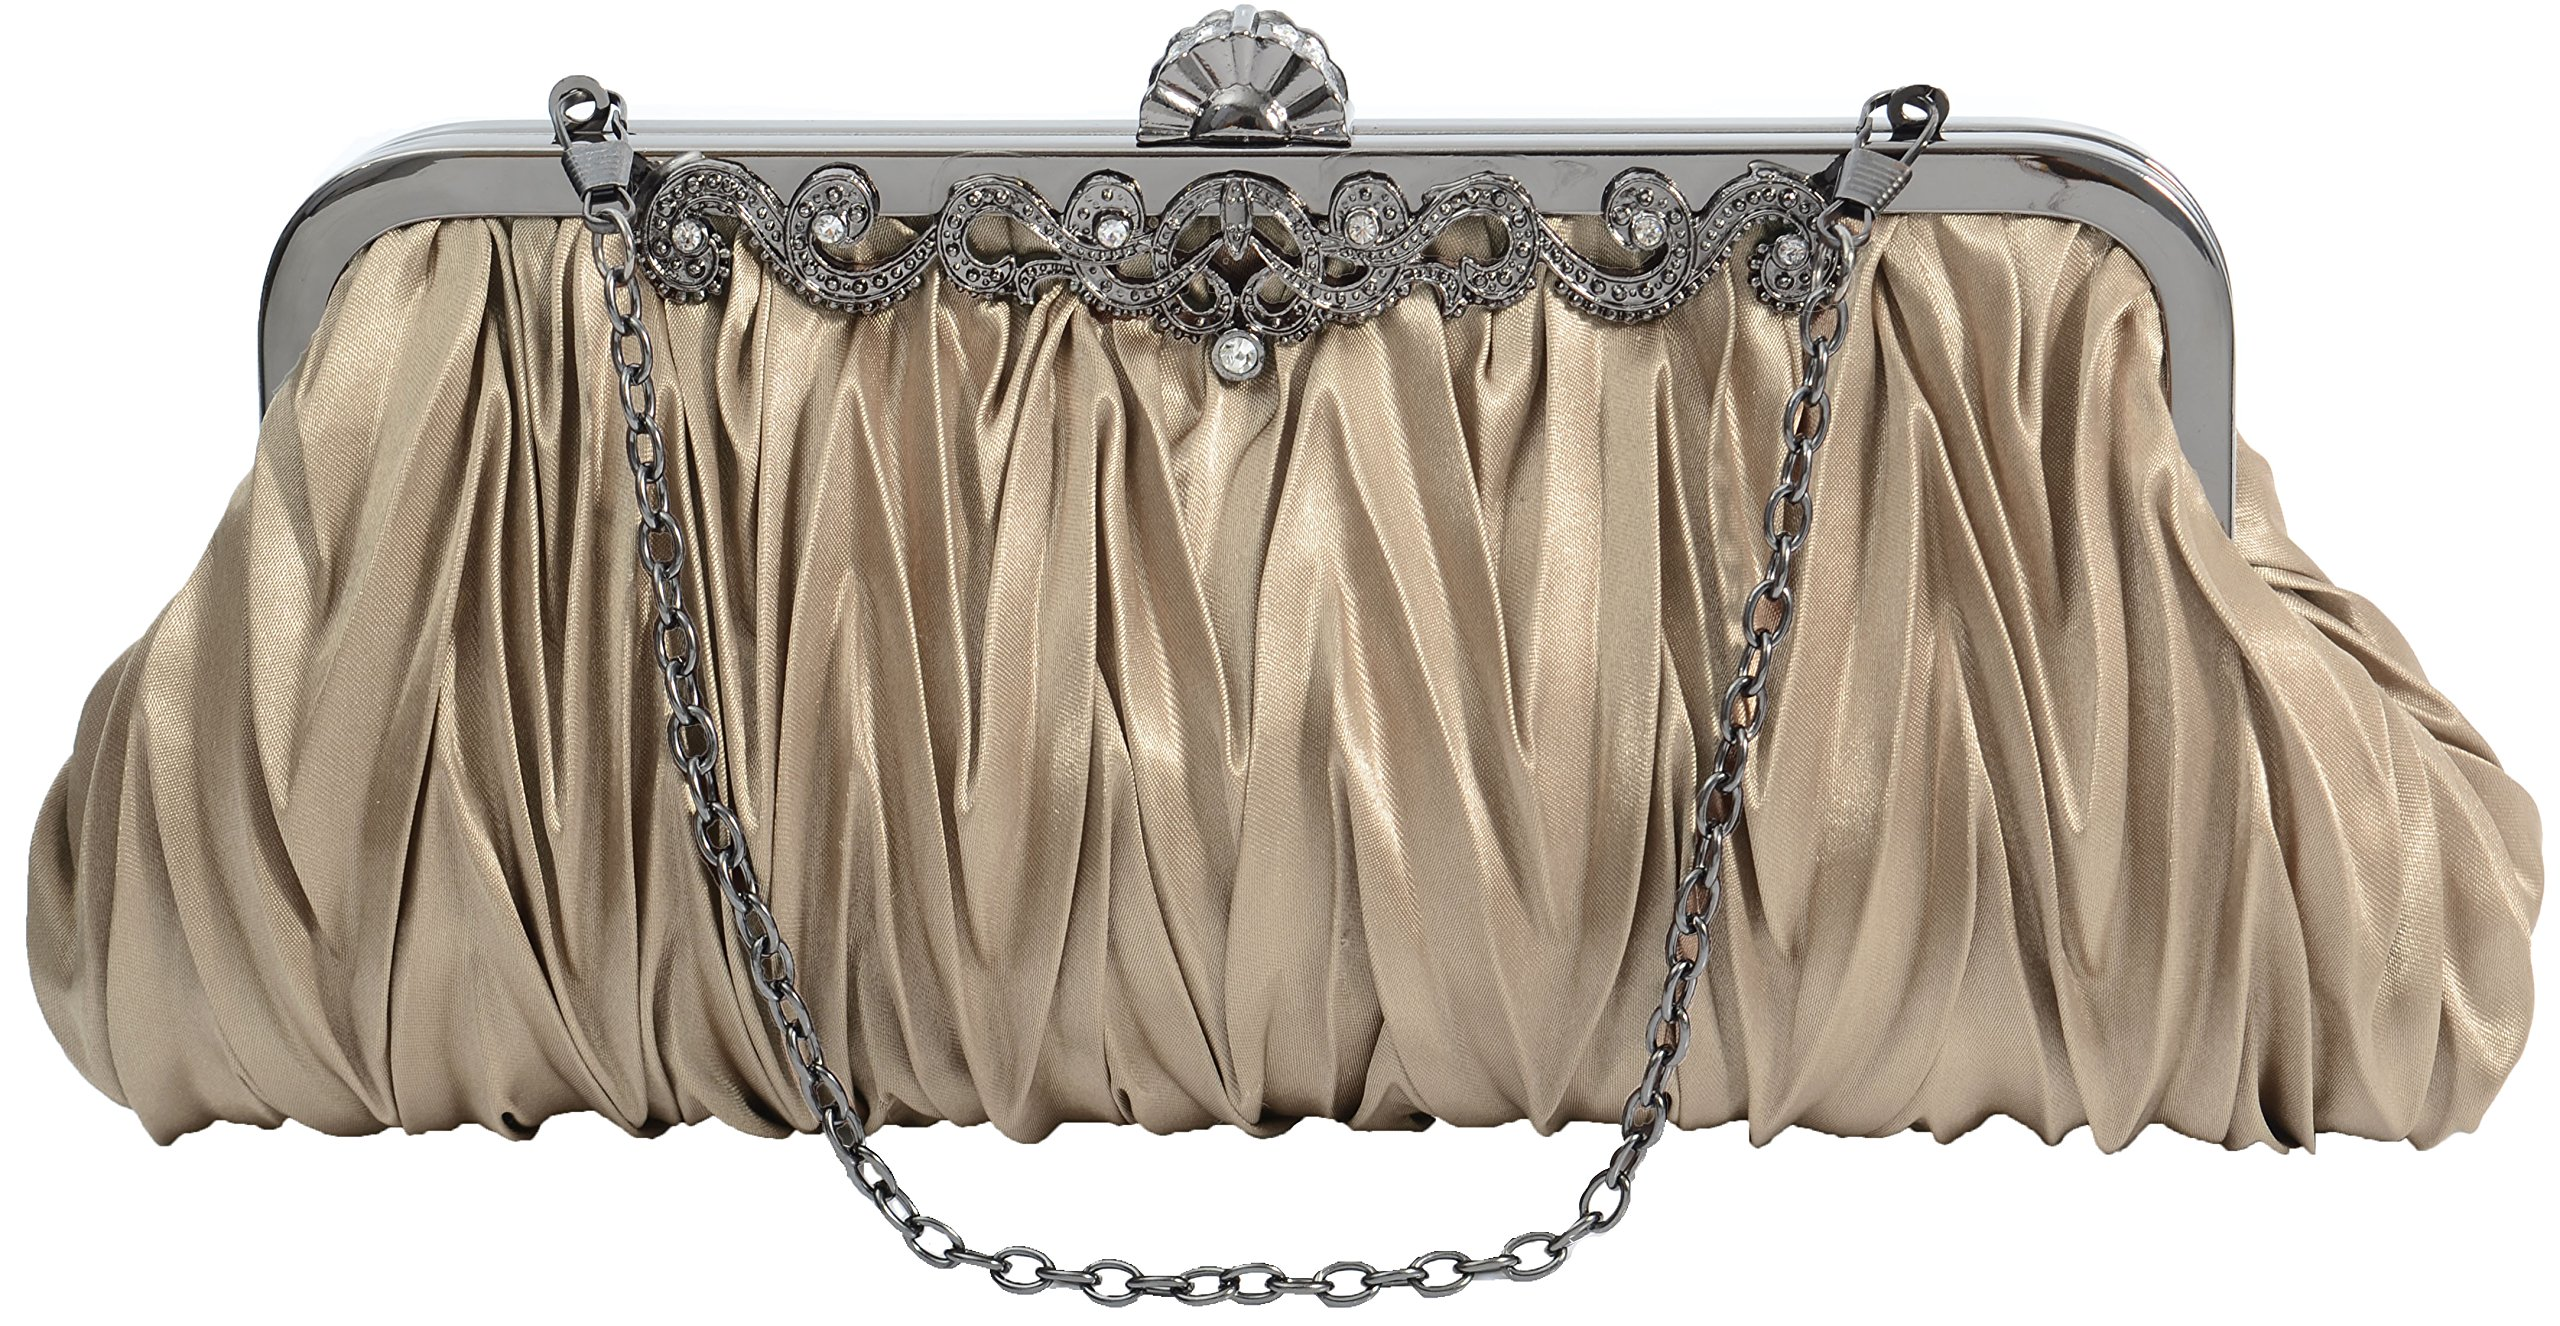 Pulama 1920s Crossbody Bag for Women, Vintage Evening Clutch Purse Wallet, Coffee